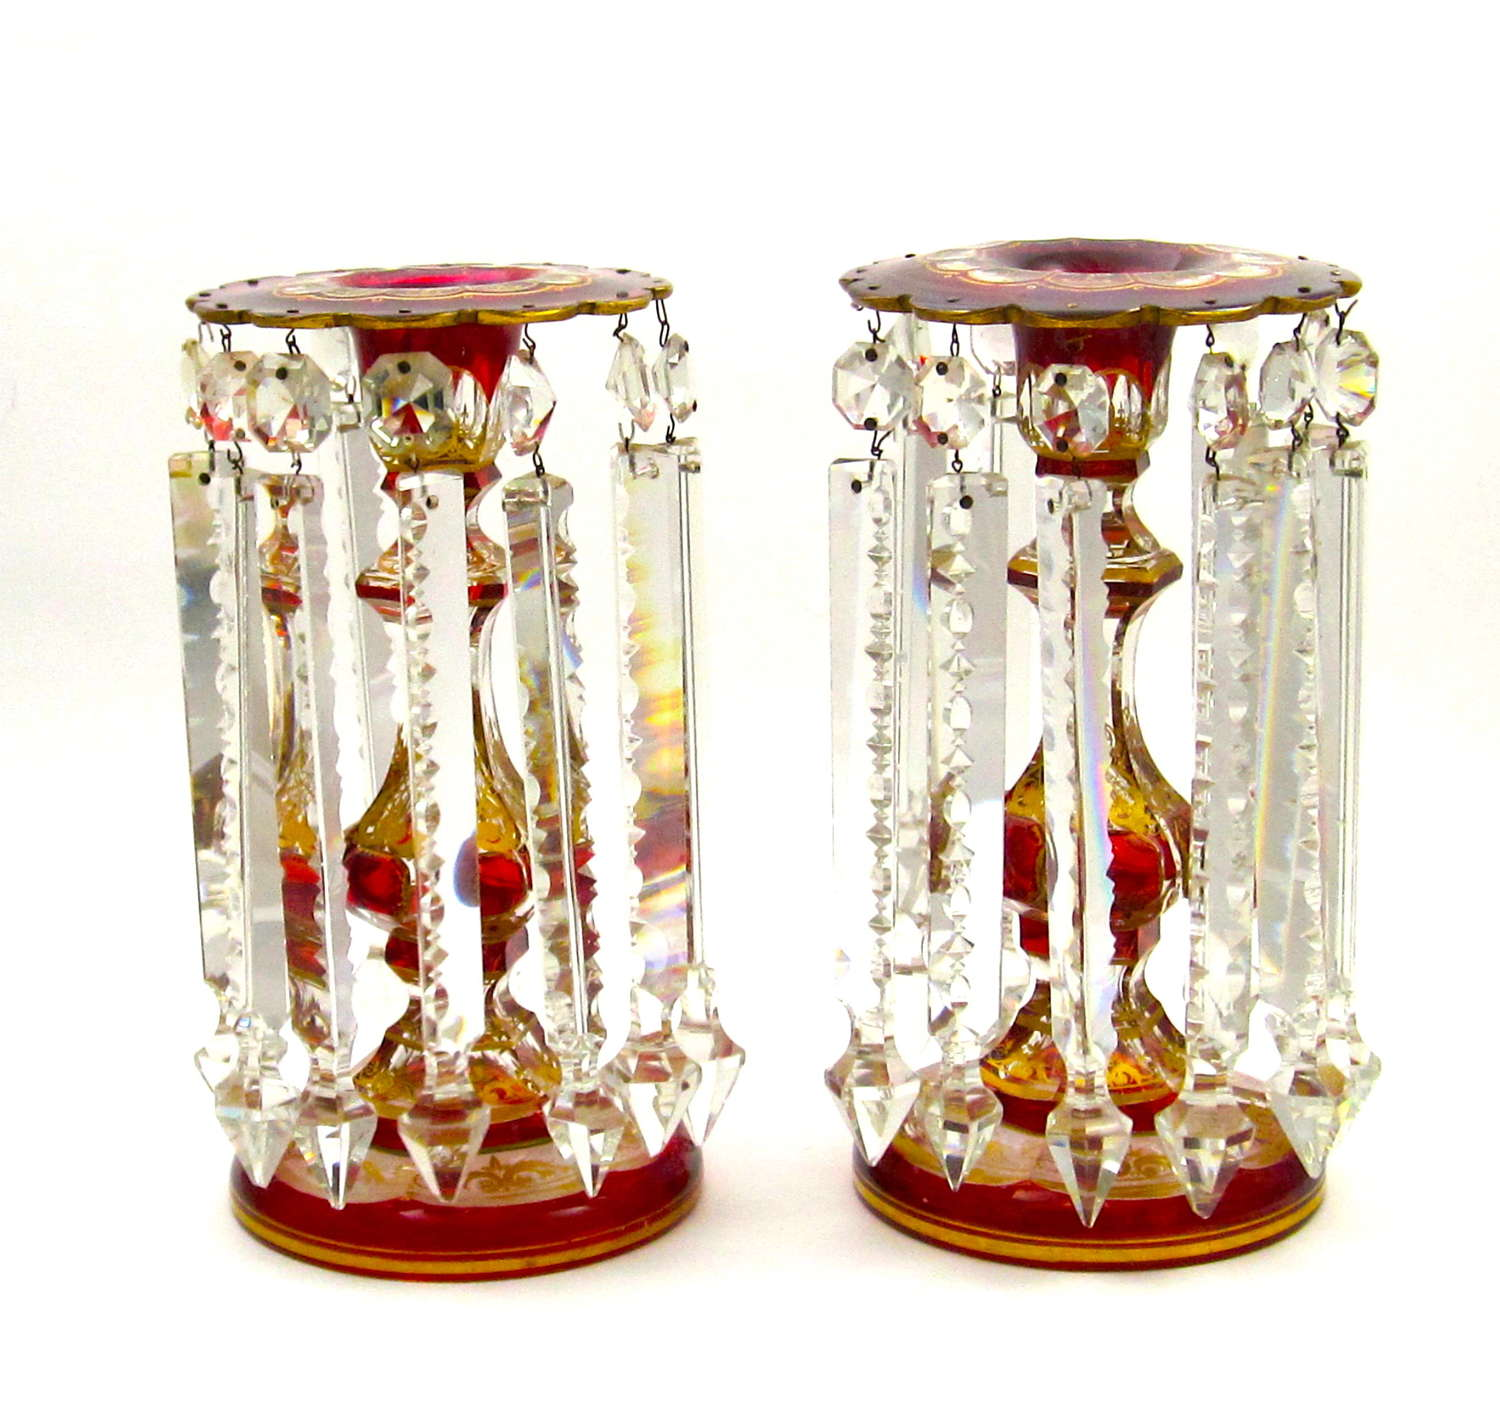 A Pair of Antique Bohemian Glass Lustres Decorated with Red Cabochon